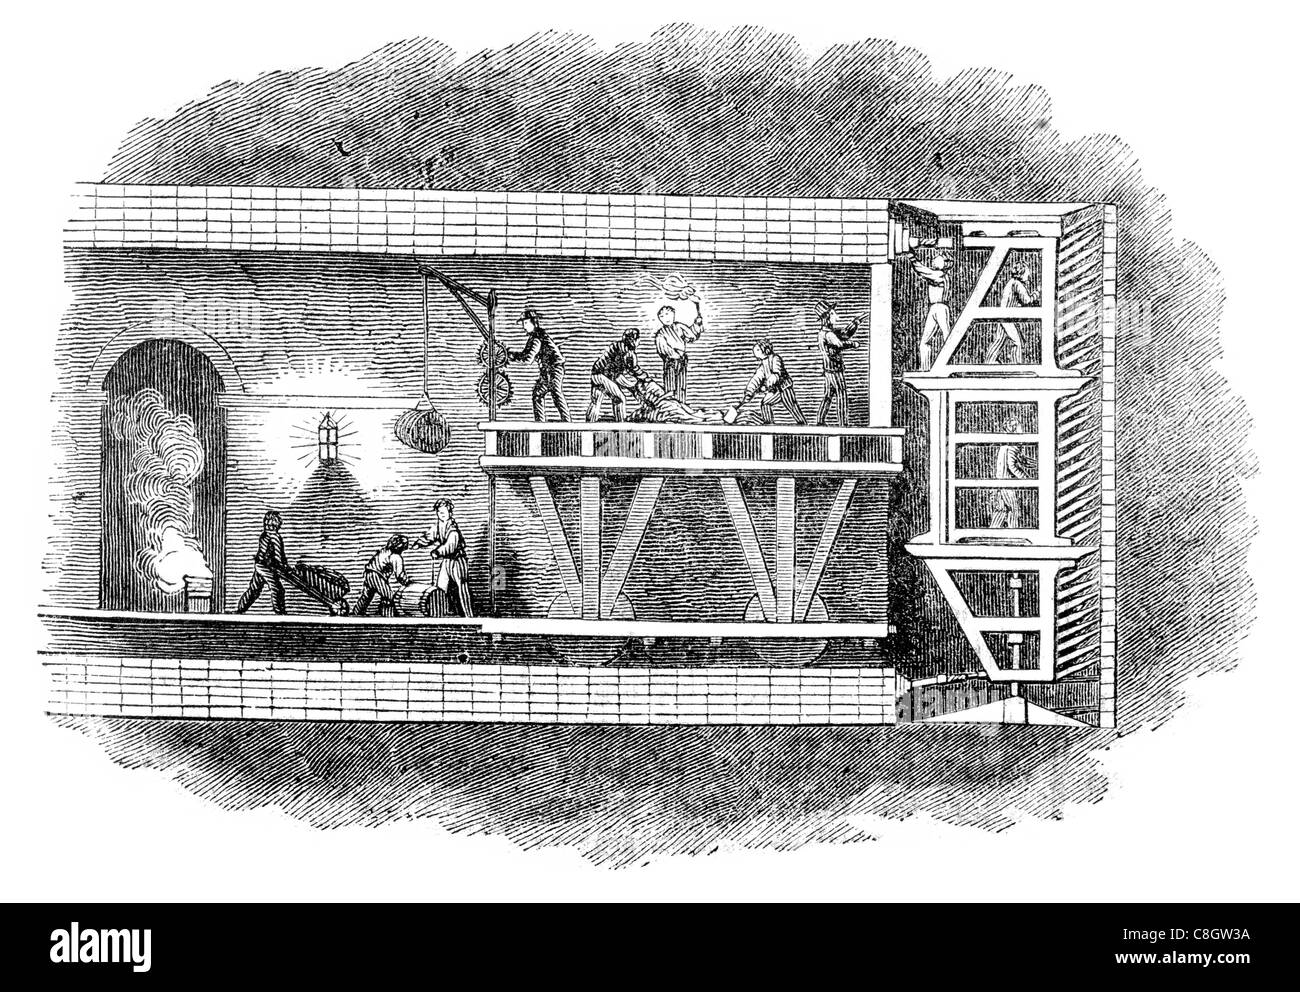 Excavating Excavation River Thames Tunnel underwater London United Kingdom Rotherhithe Wapping  Isambard Brunel - Stock Image